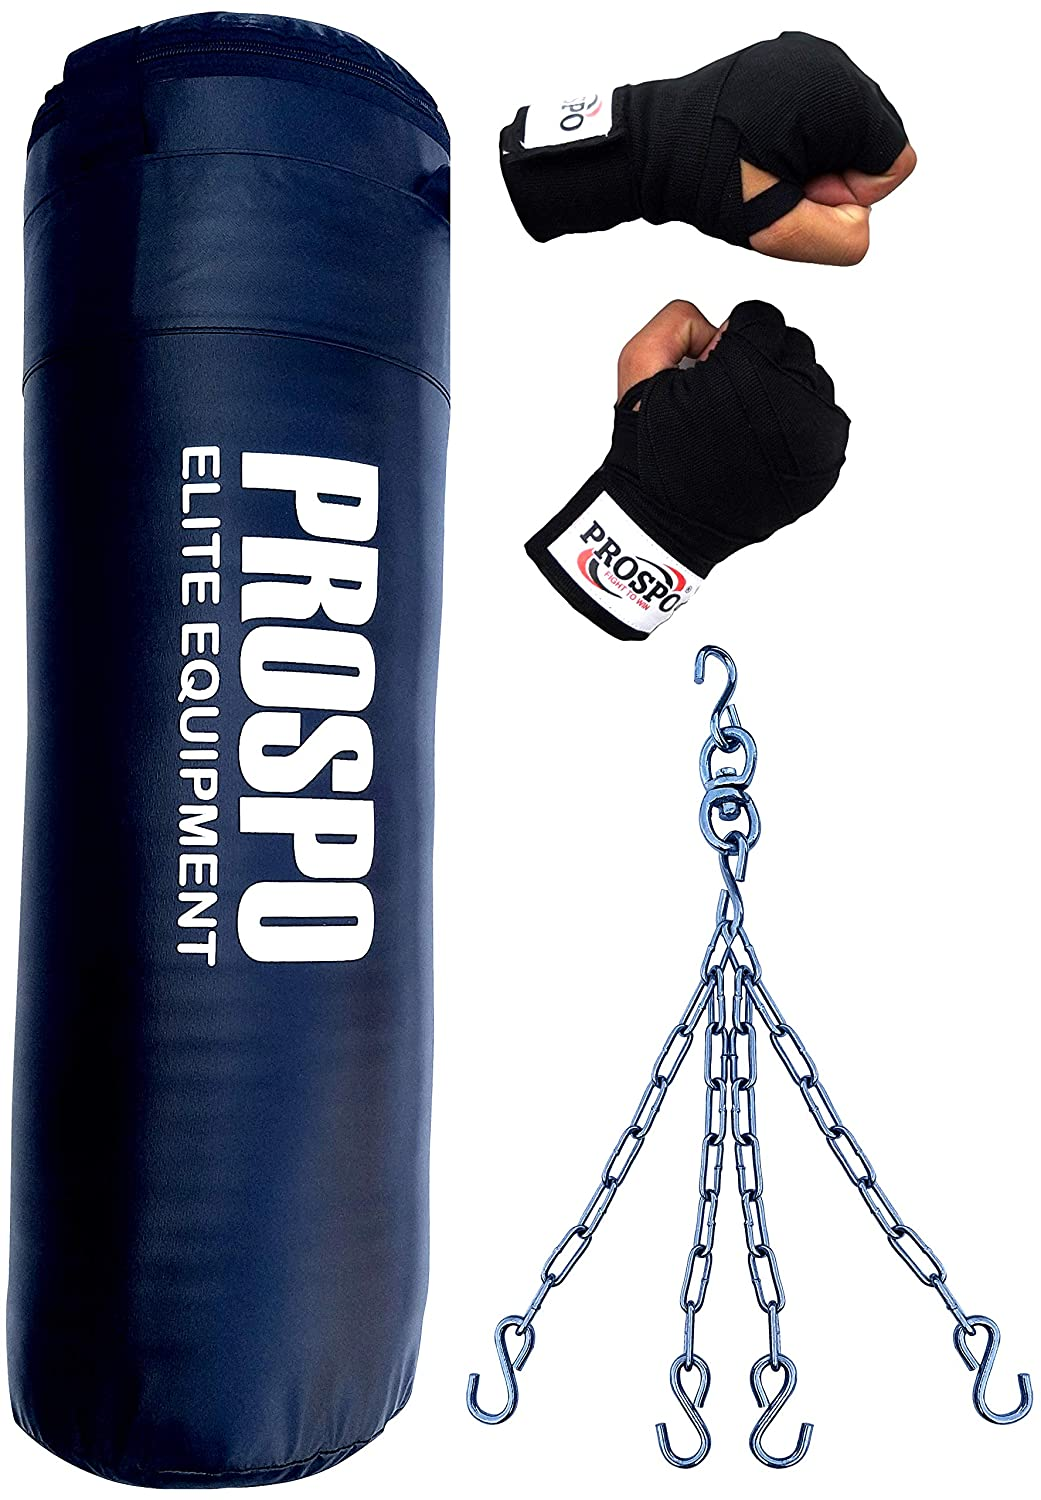 Prospo 3 Feet Extra Strong and Heavy SRF Punching Bag with Hand Wrap and Chain